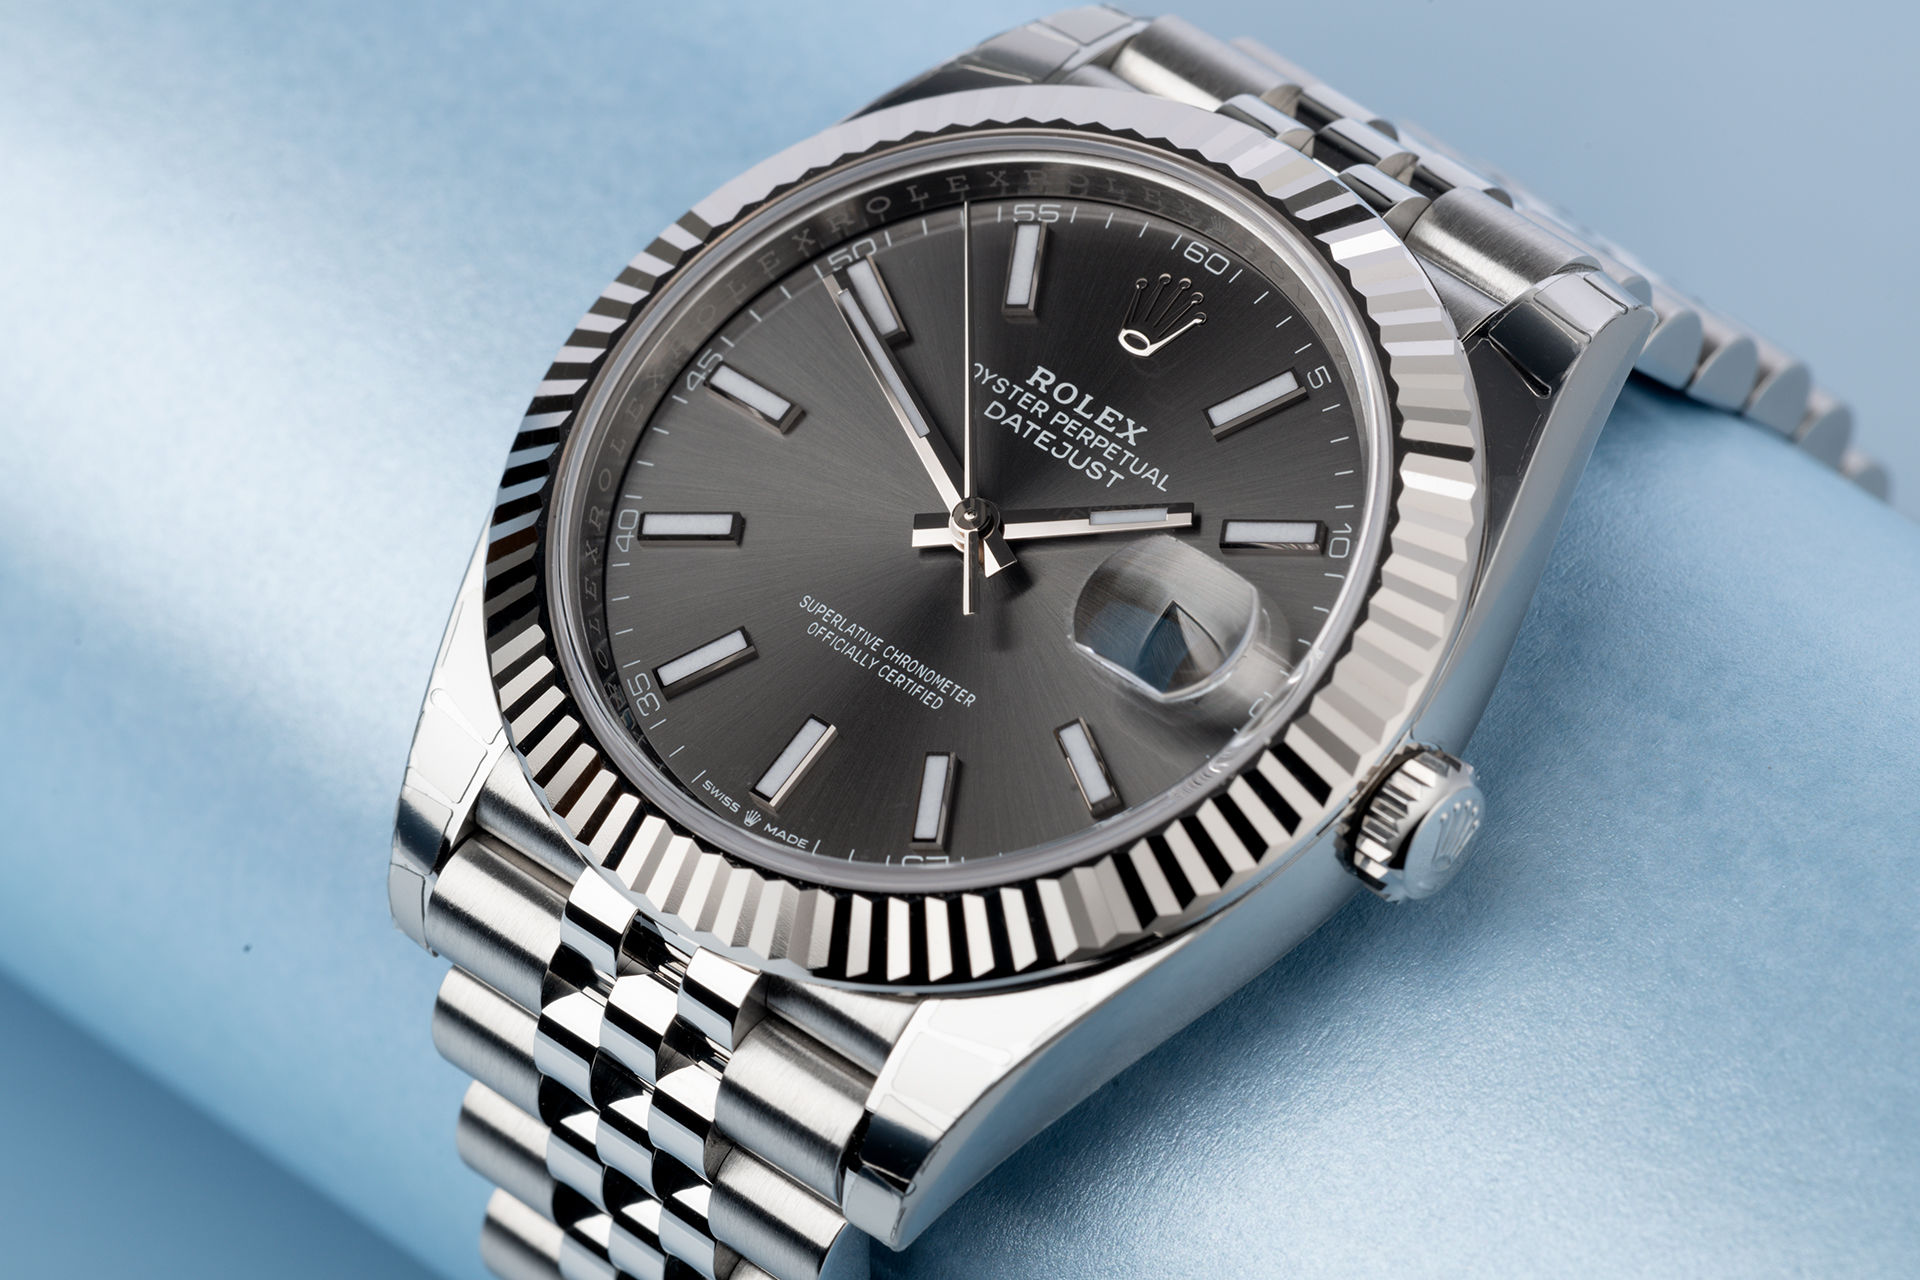 ref 126334 | Rolex Warranty To 2024 | Rolex Datejust 41